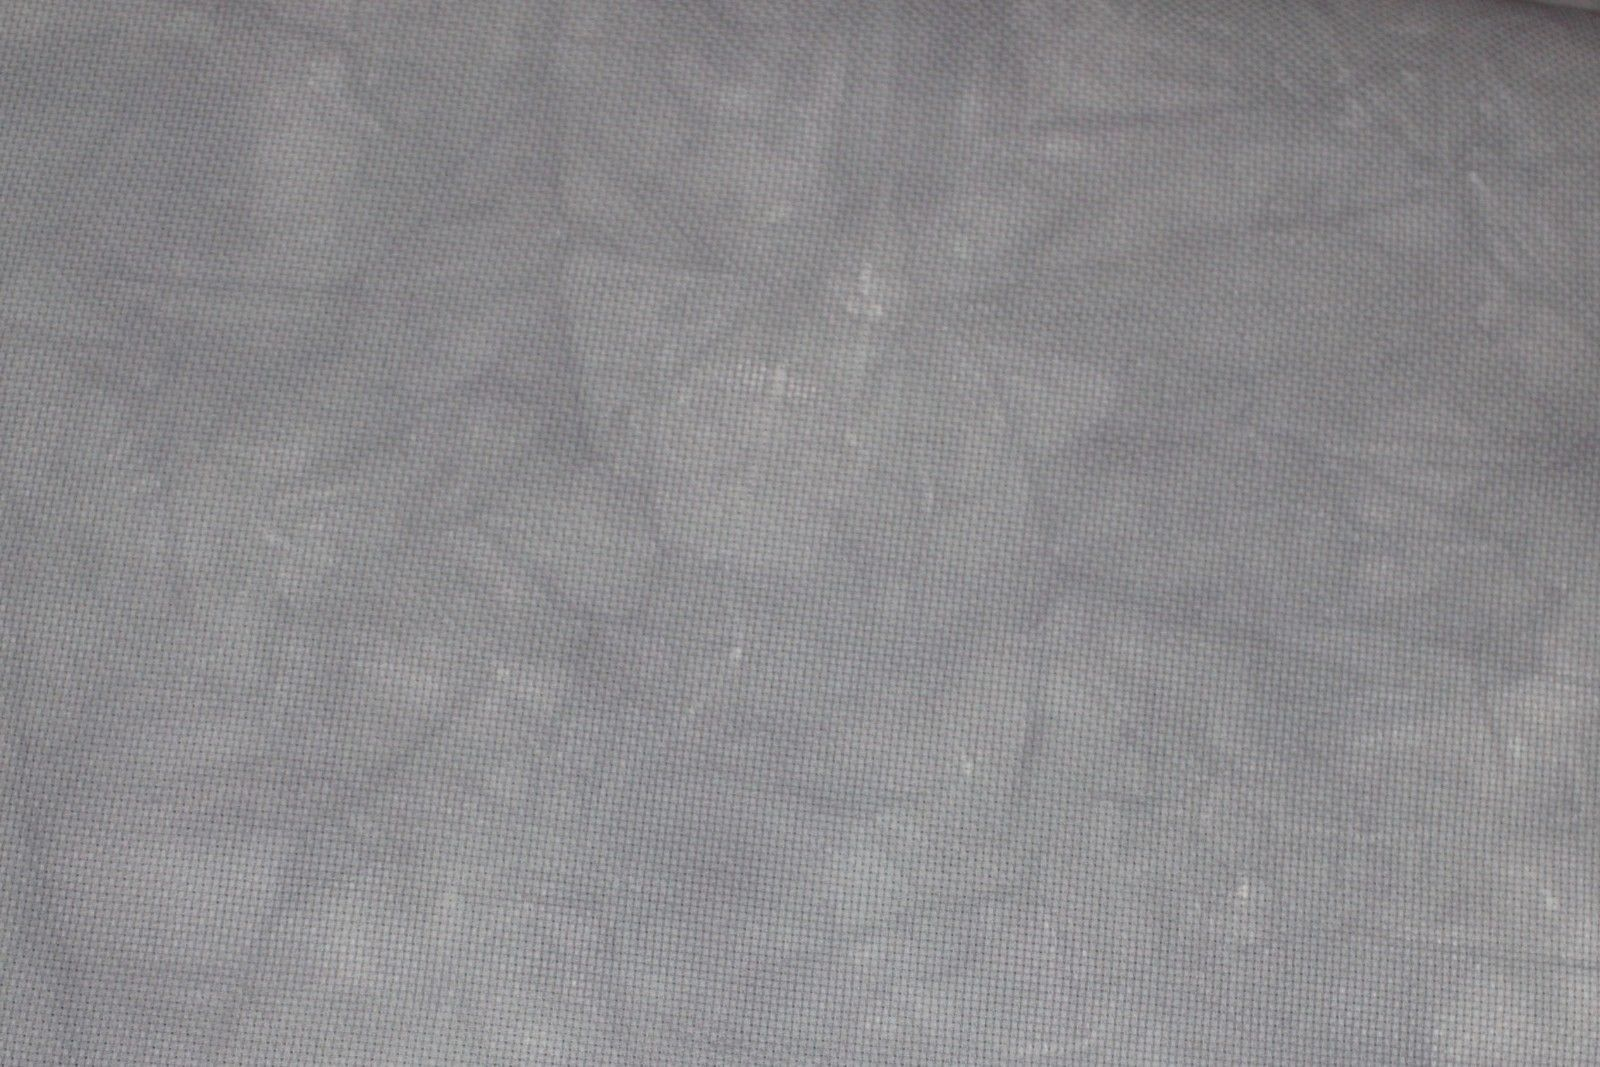 Embroidery Cloth Fabric 183196 Hand Dyed Aida Cloth Stormy Skies 11